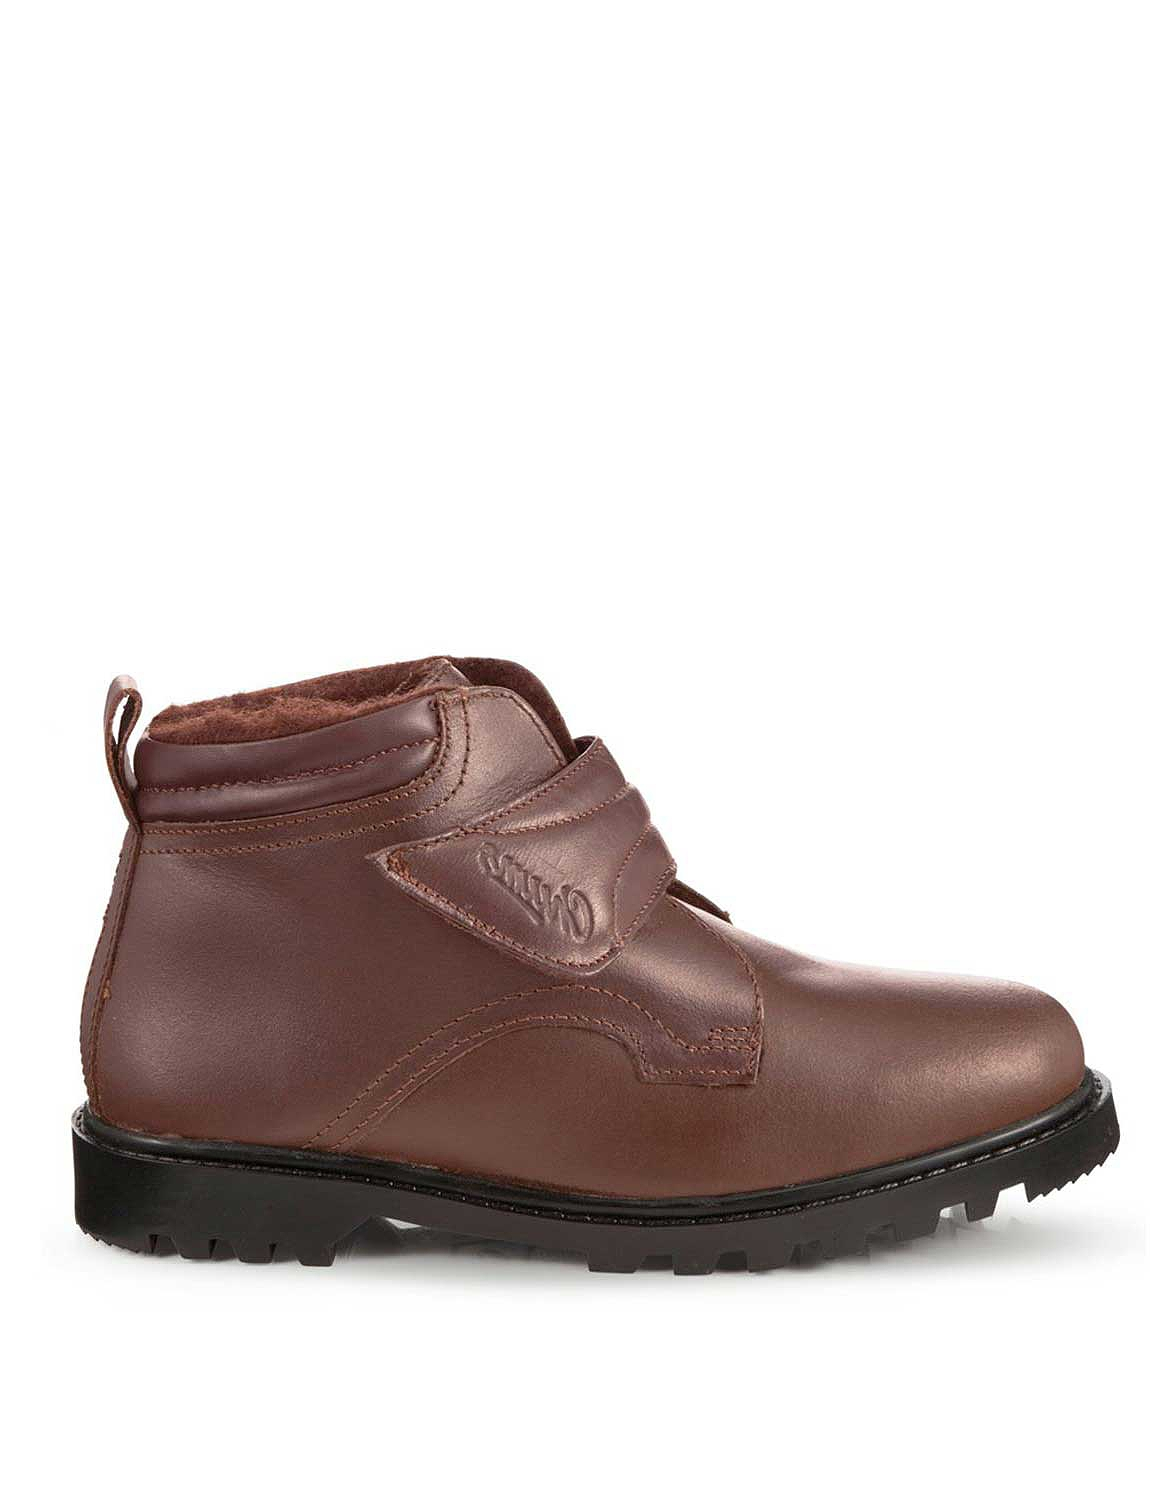 Mens Real Leather Warm Lined Touch Fastening Boots